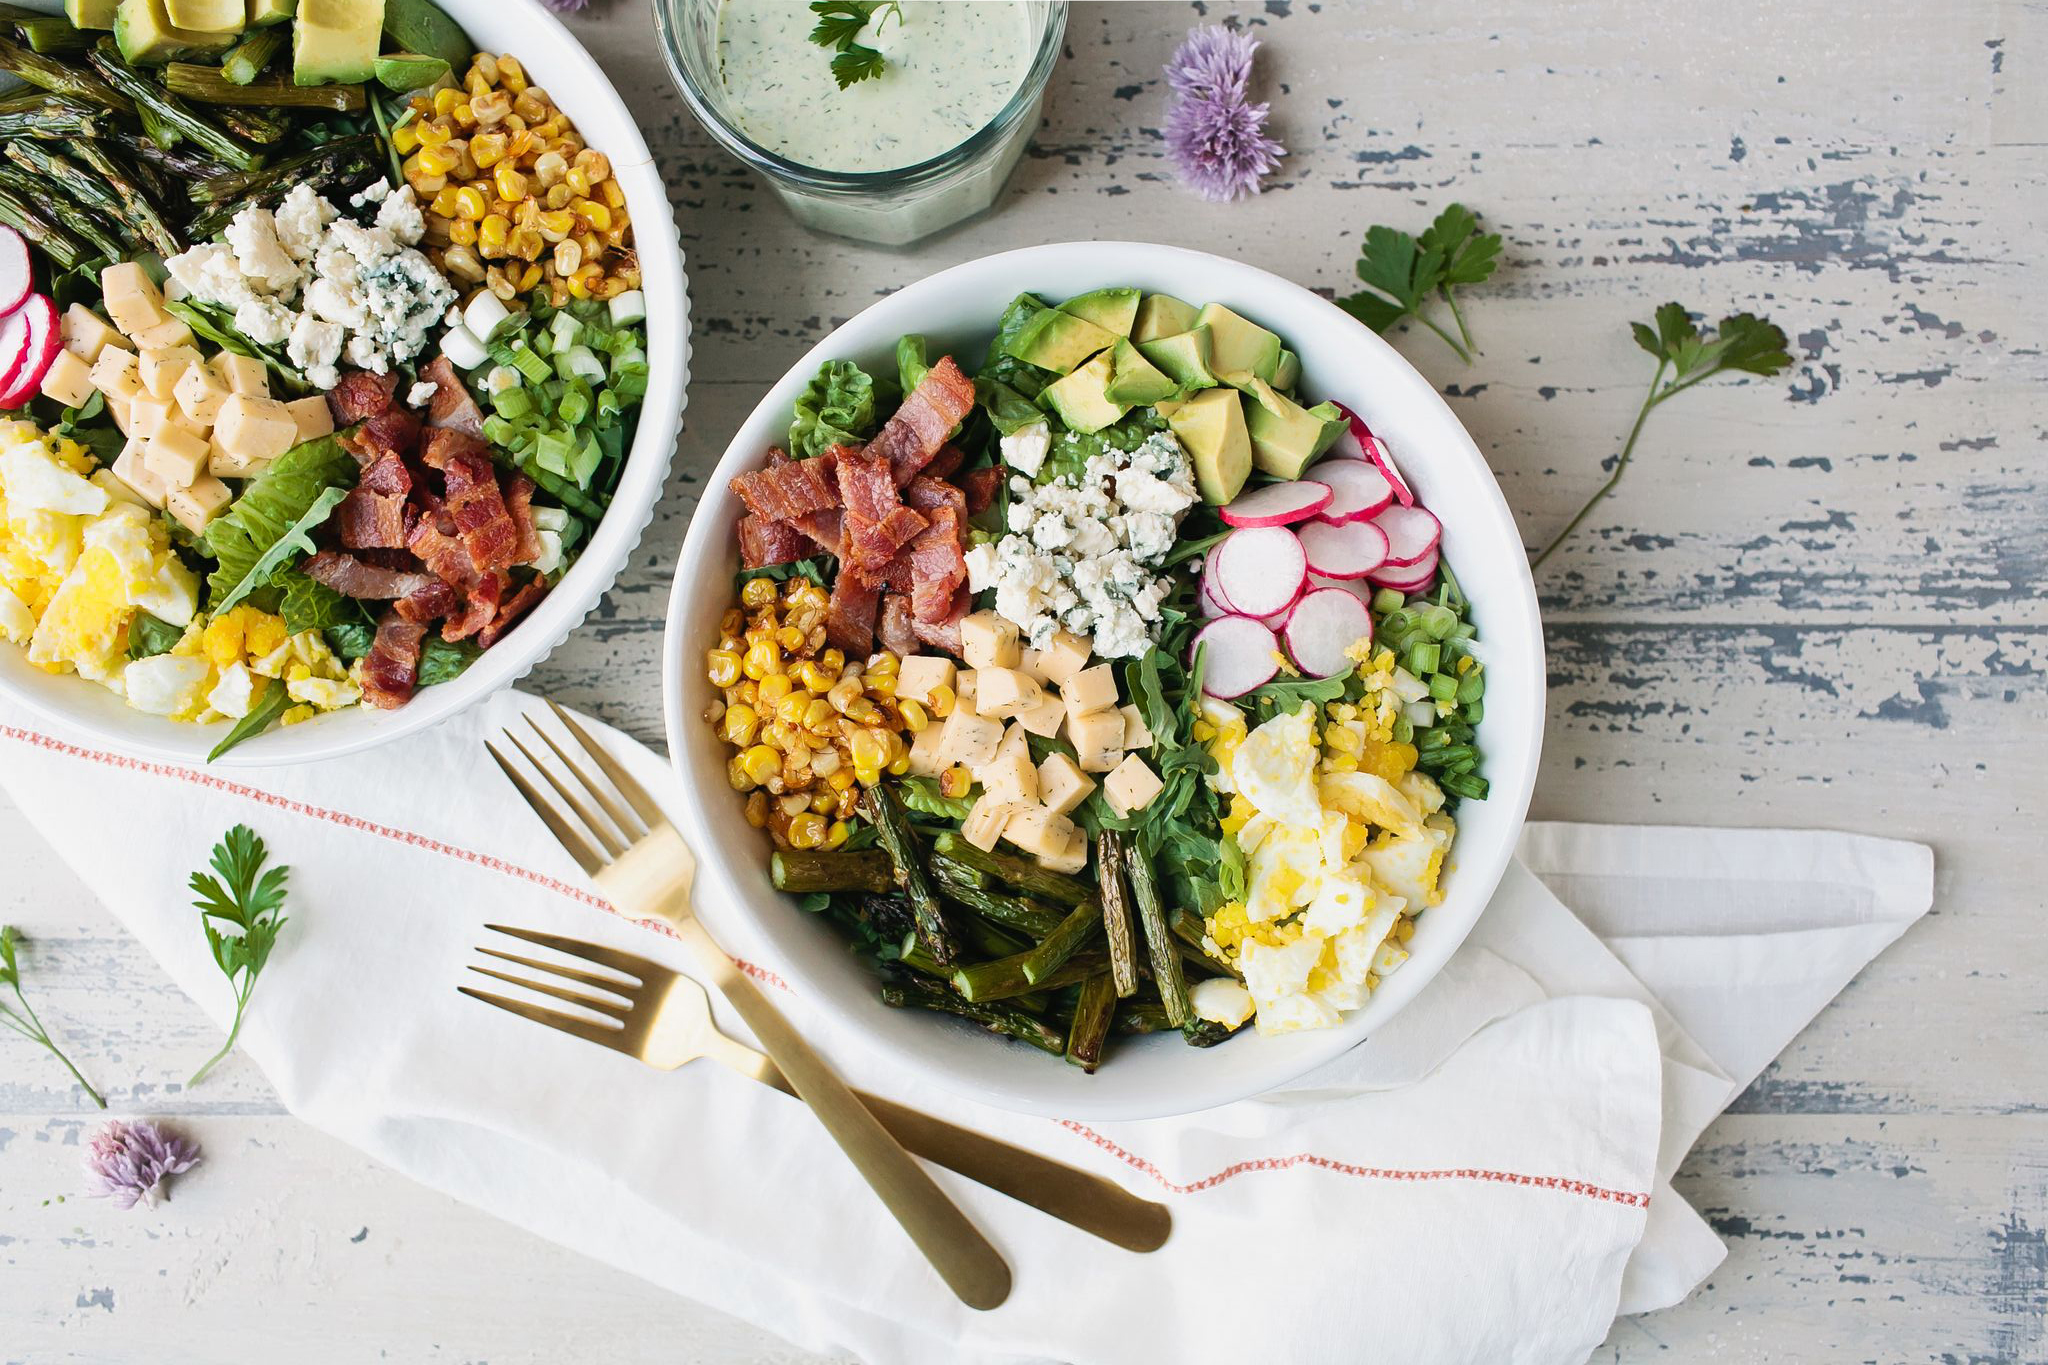 Summer Cobb Salad serving